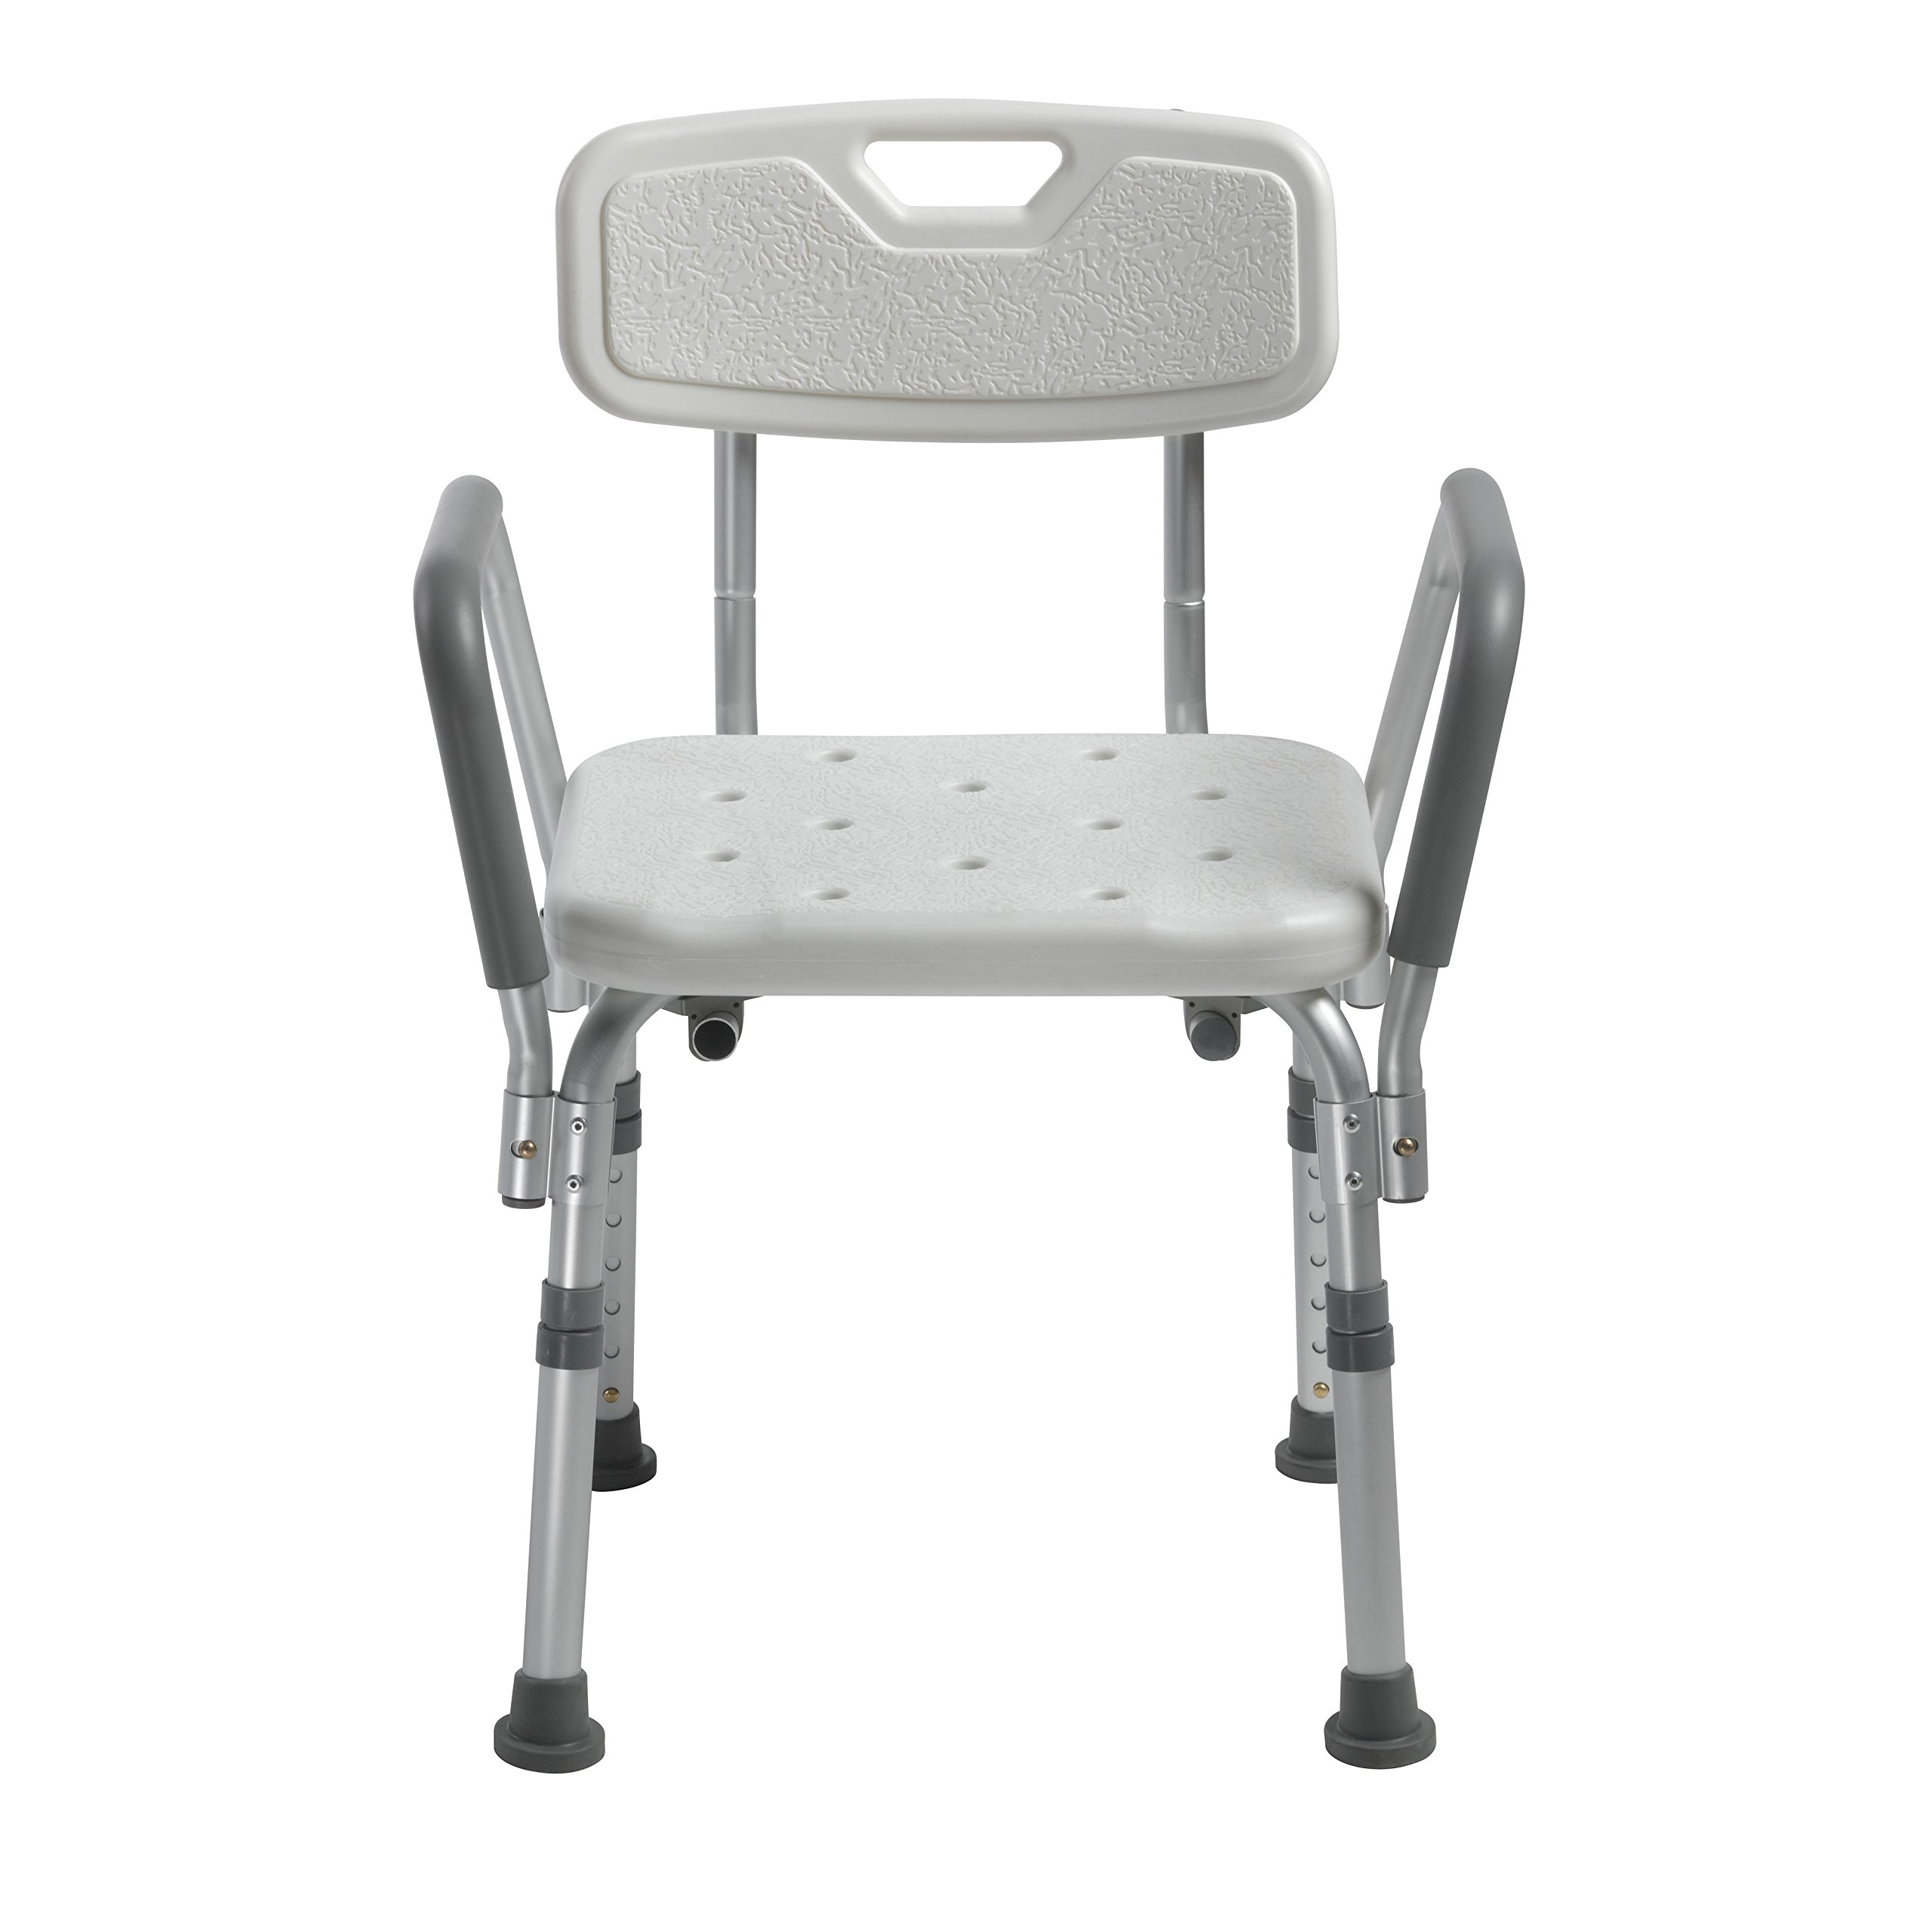 Drive Medical Knock Down Bath Bench with Back and Padded Arms, White